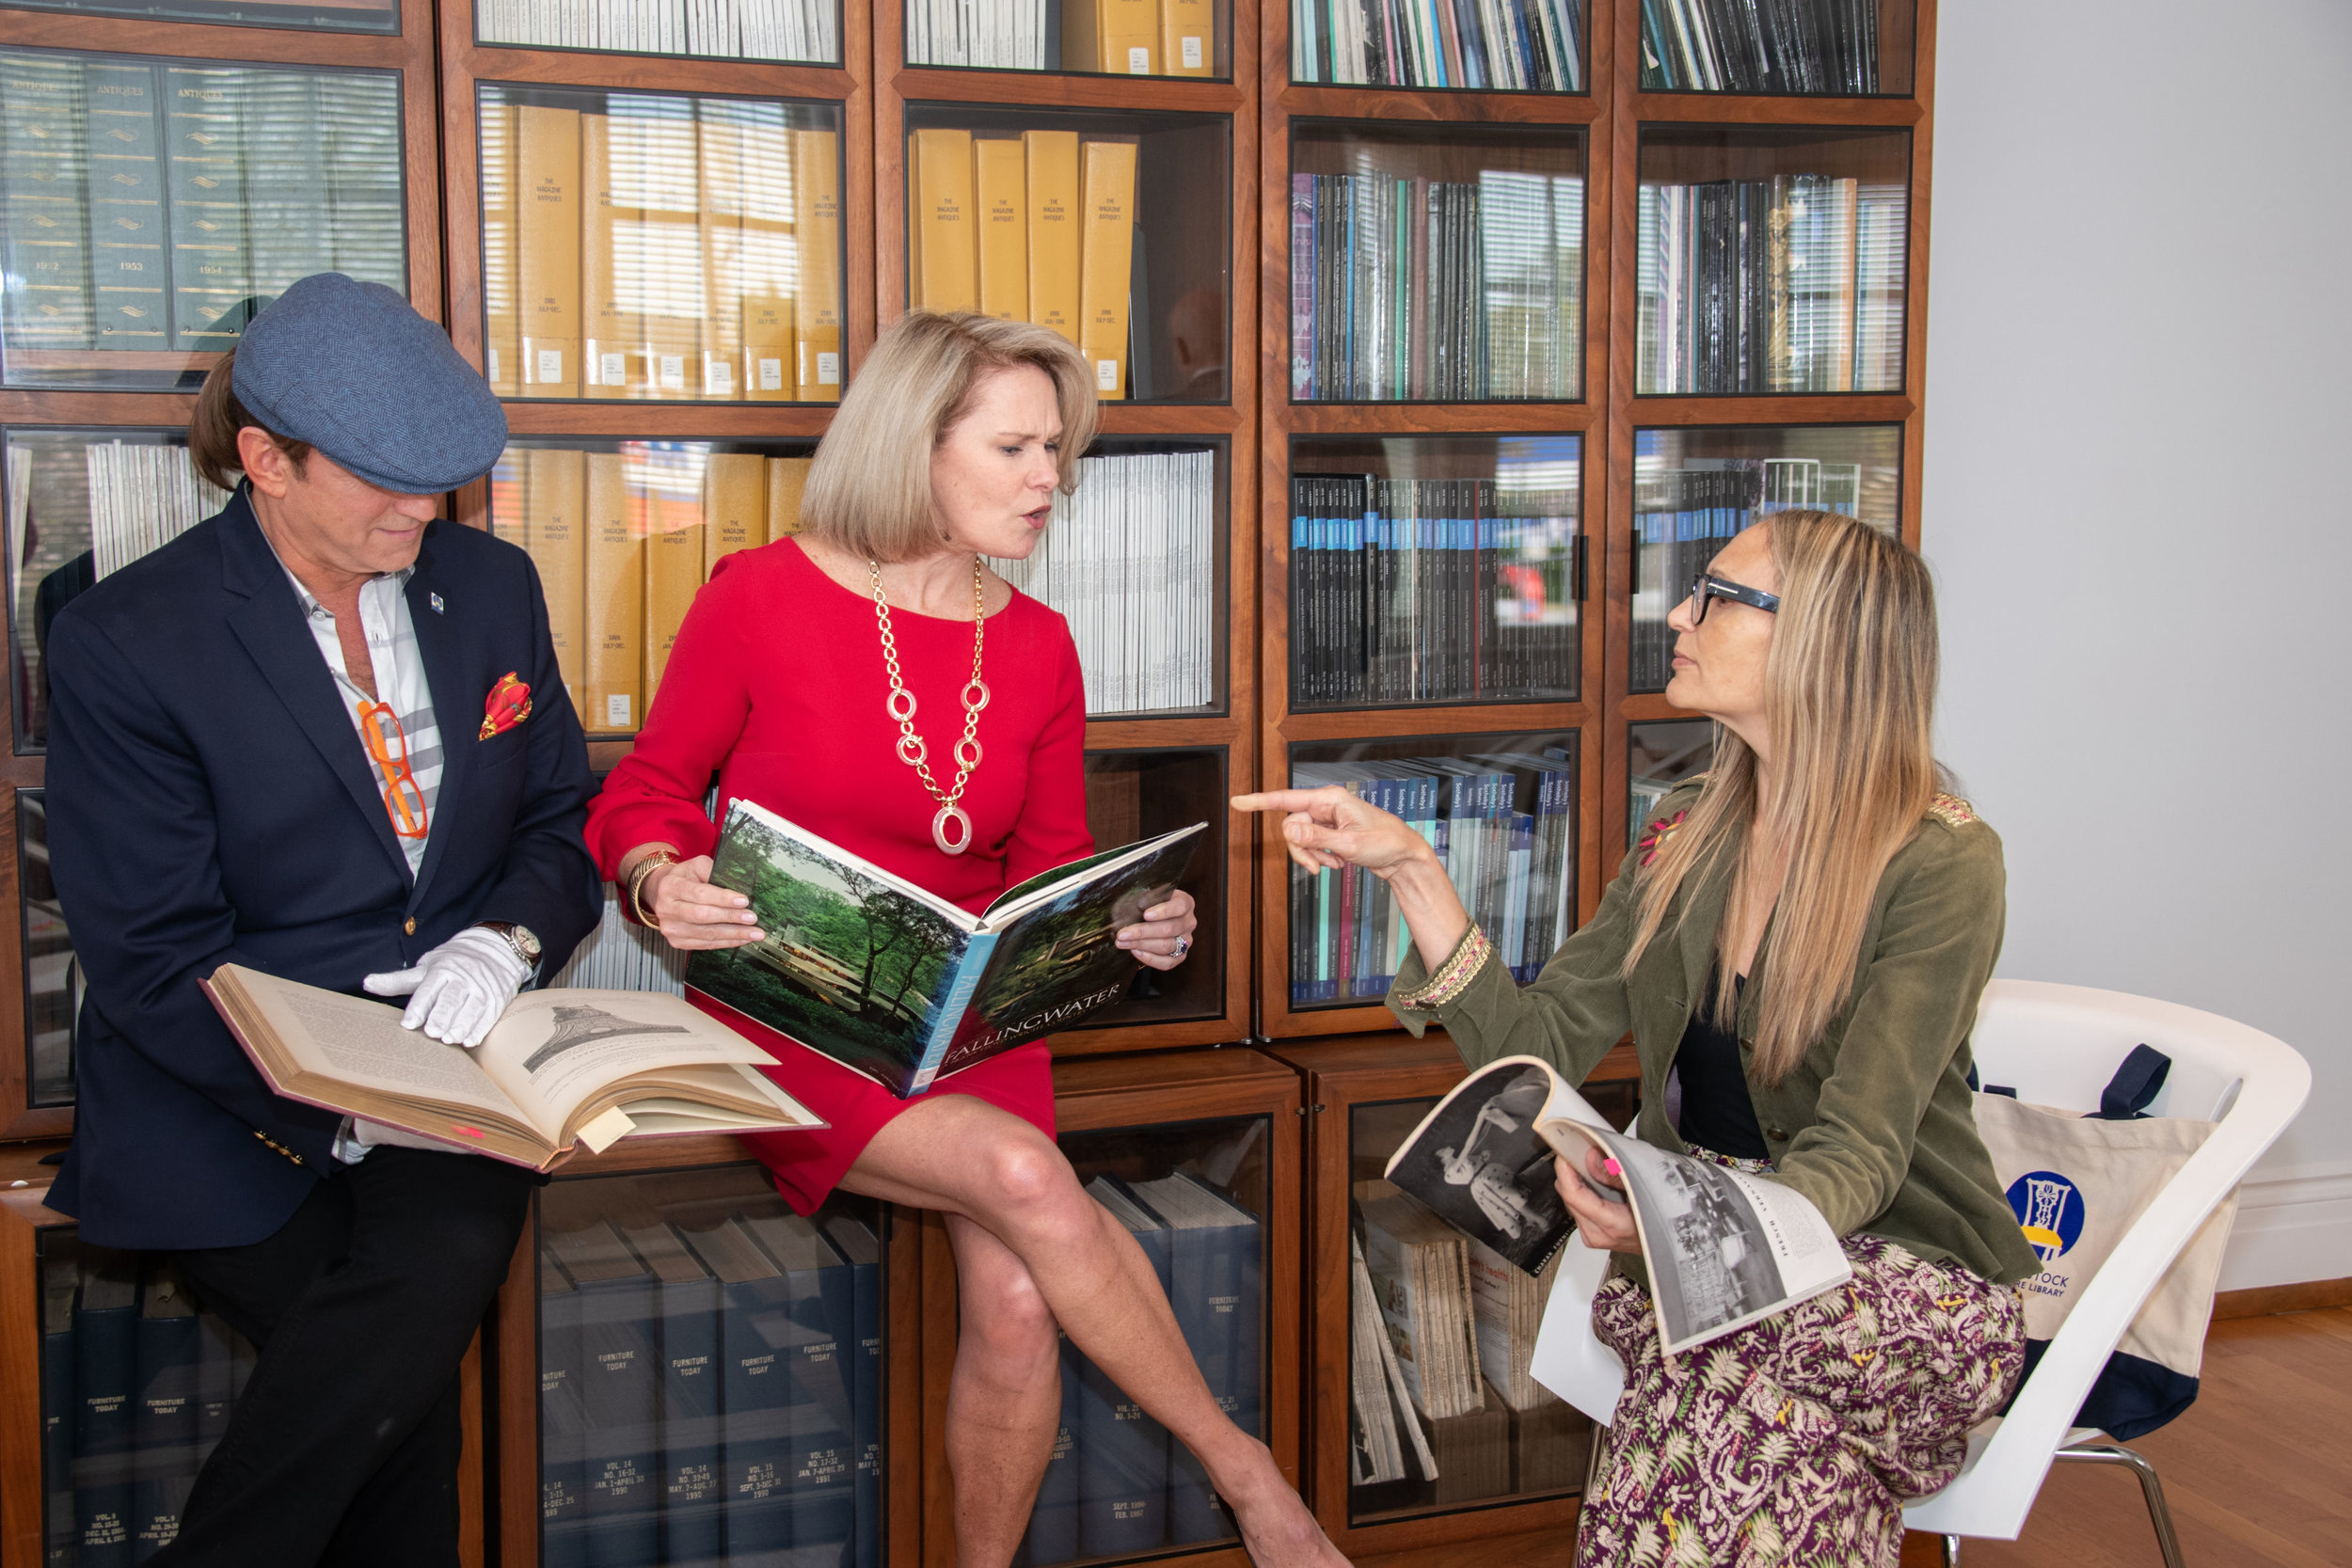 At the Bienenstock Library,. Libby's acting skills come in handy. Gary is wearing cotton gloves in order to handle a rare antiquarian book. Image:  MaryAnn Luedtke Photography